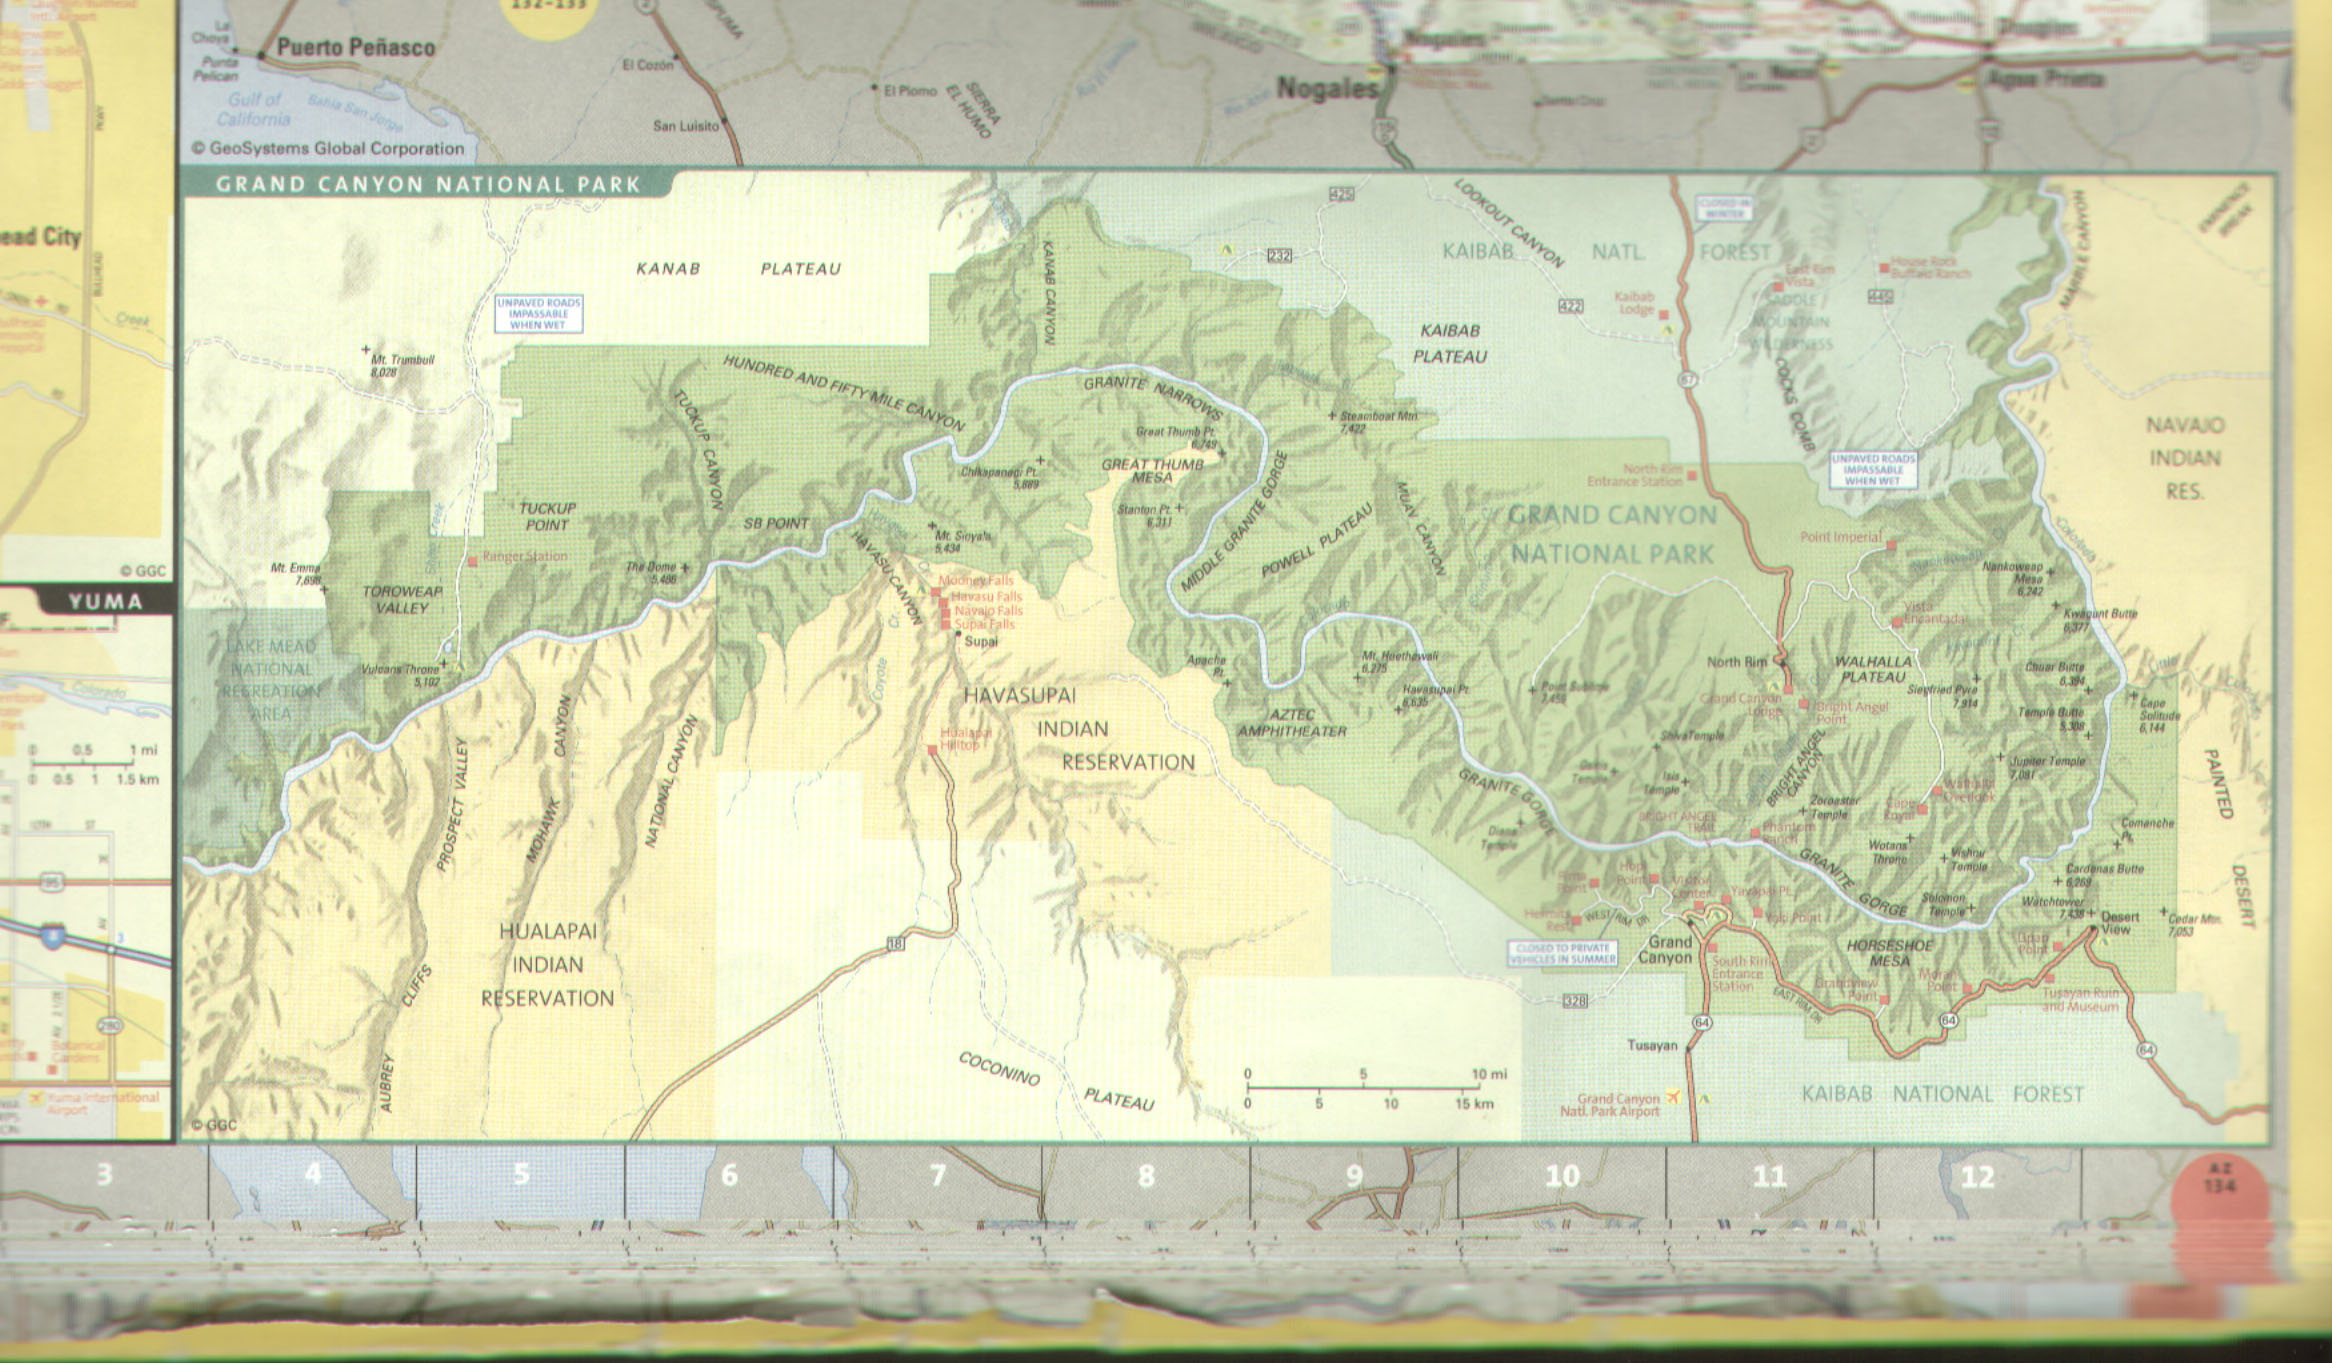 Havasupai Indian Reservation Location Map 